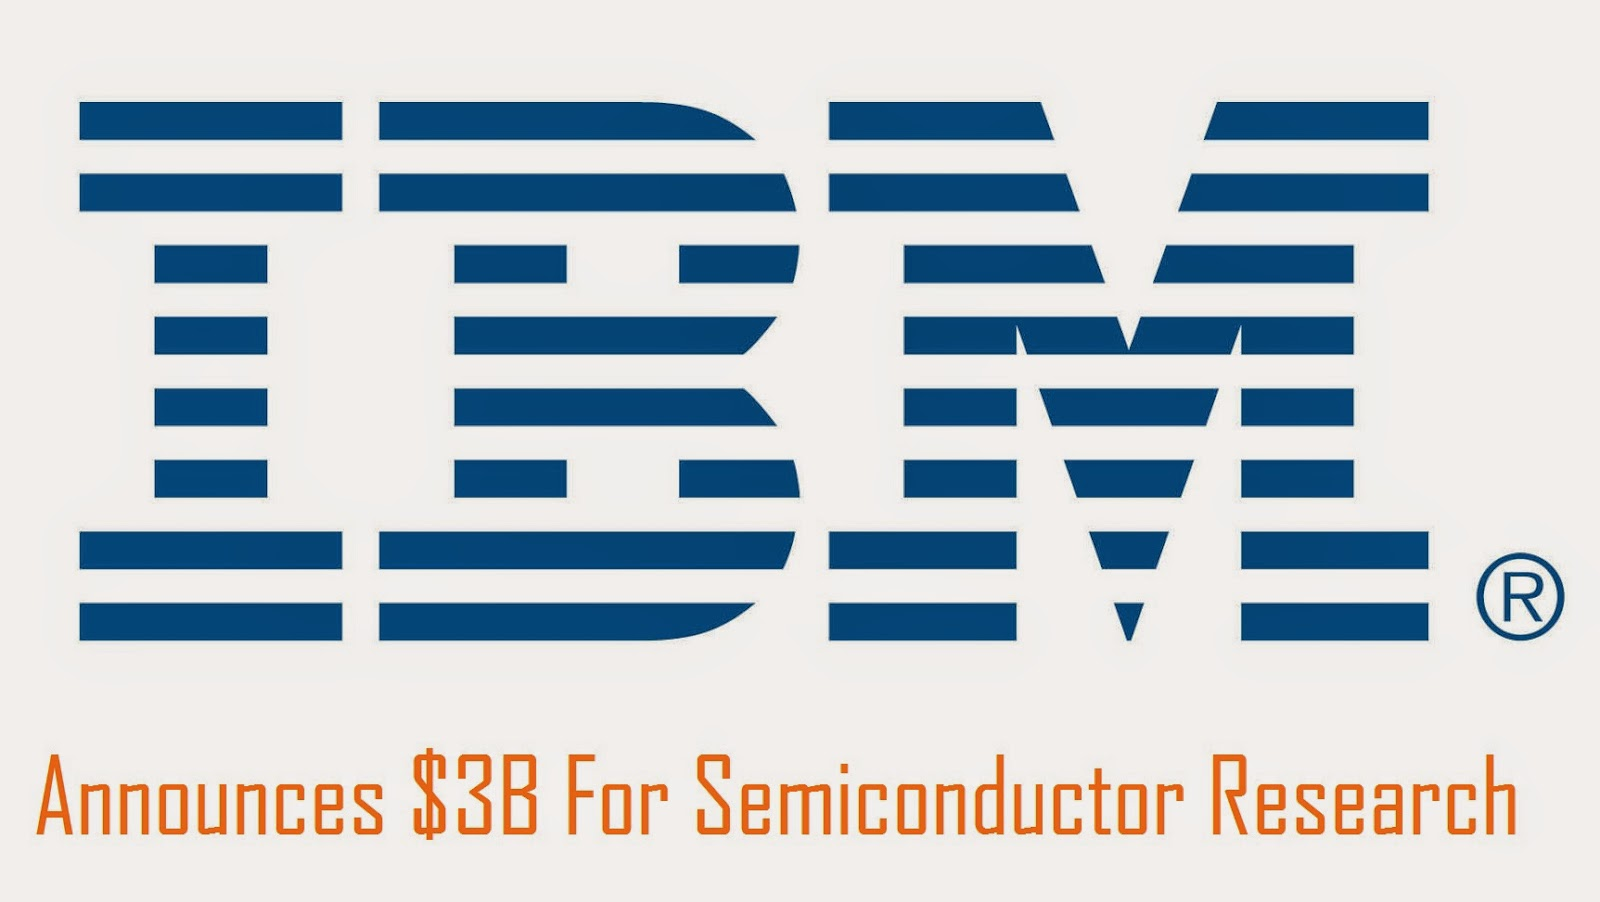 IBM Announces $3B For Semiconductor Research